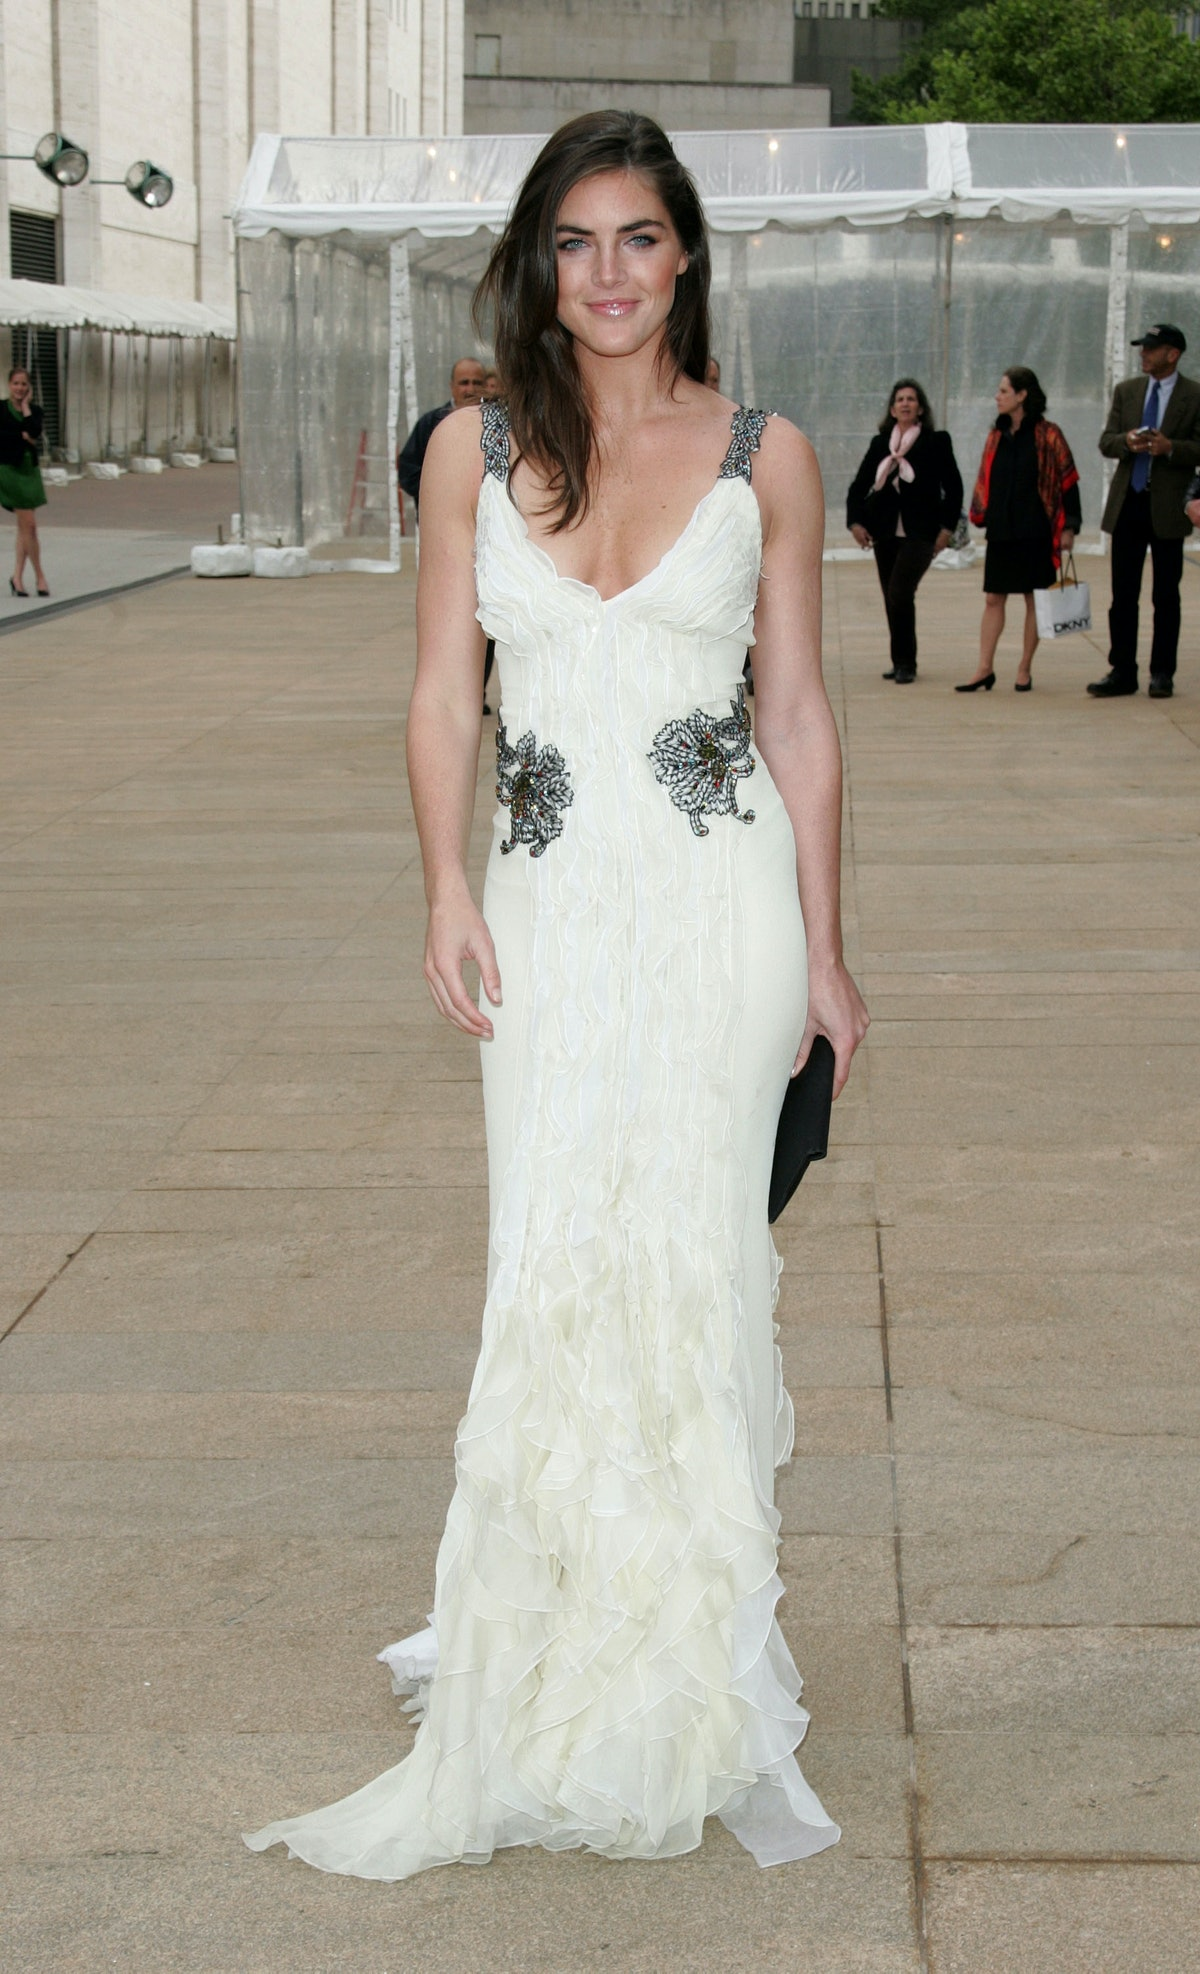 69th Annual American Ballet Theatre Spring Gala